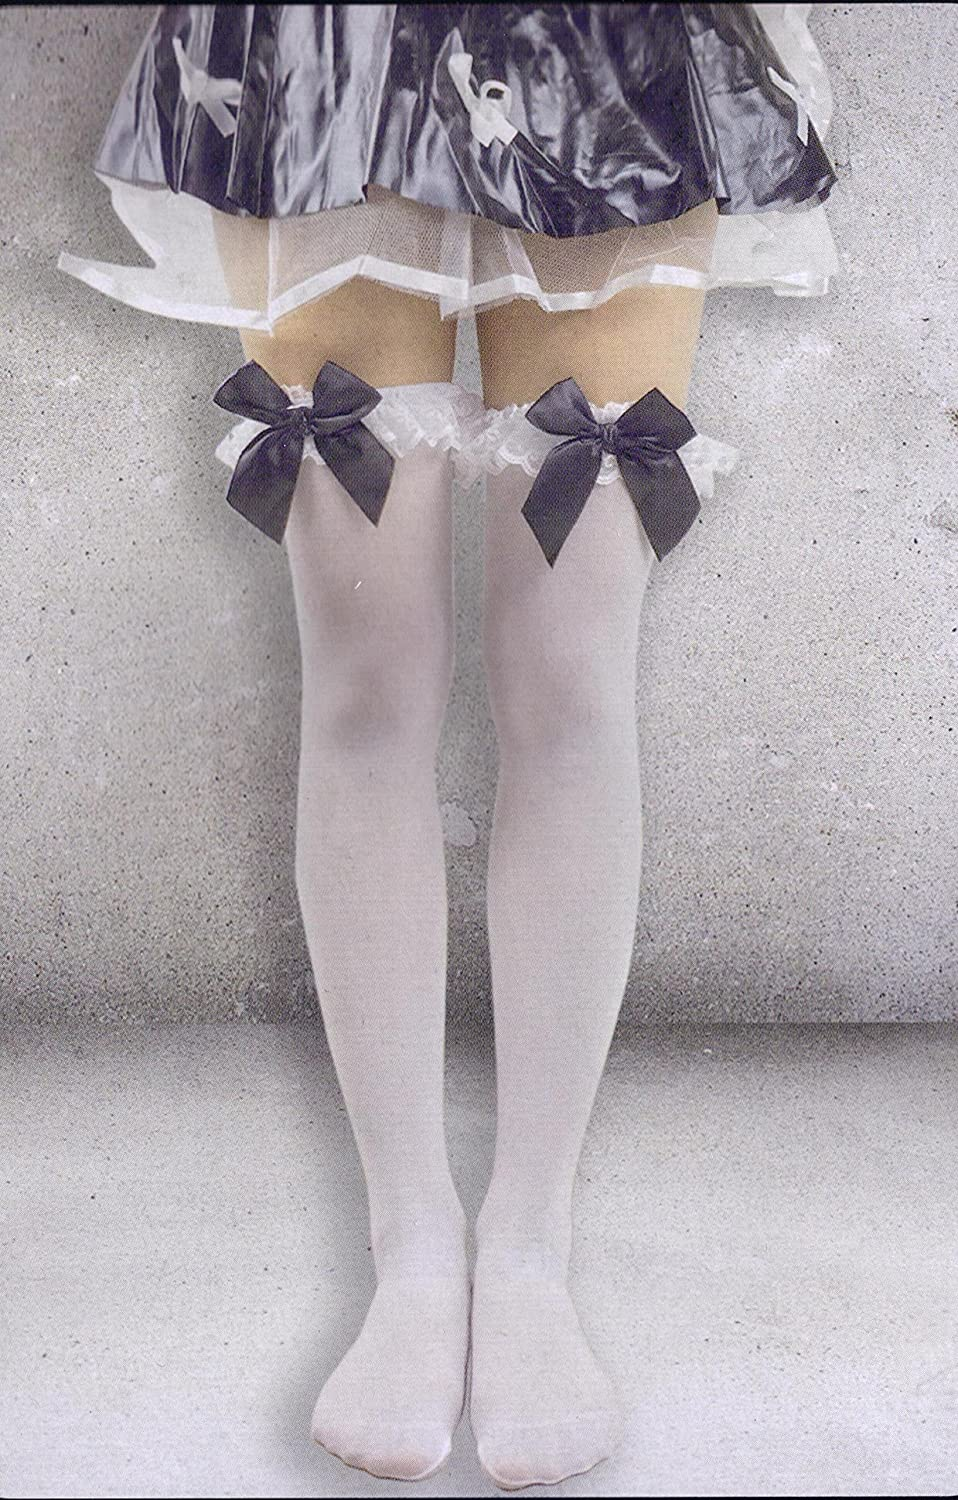 Details about  /HAPPY HALLOWEEN KNEE HIGH  SOCKS